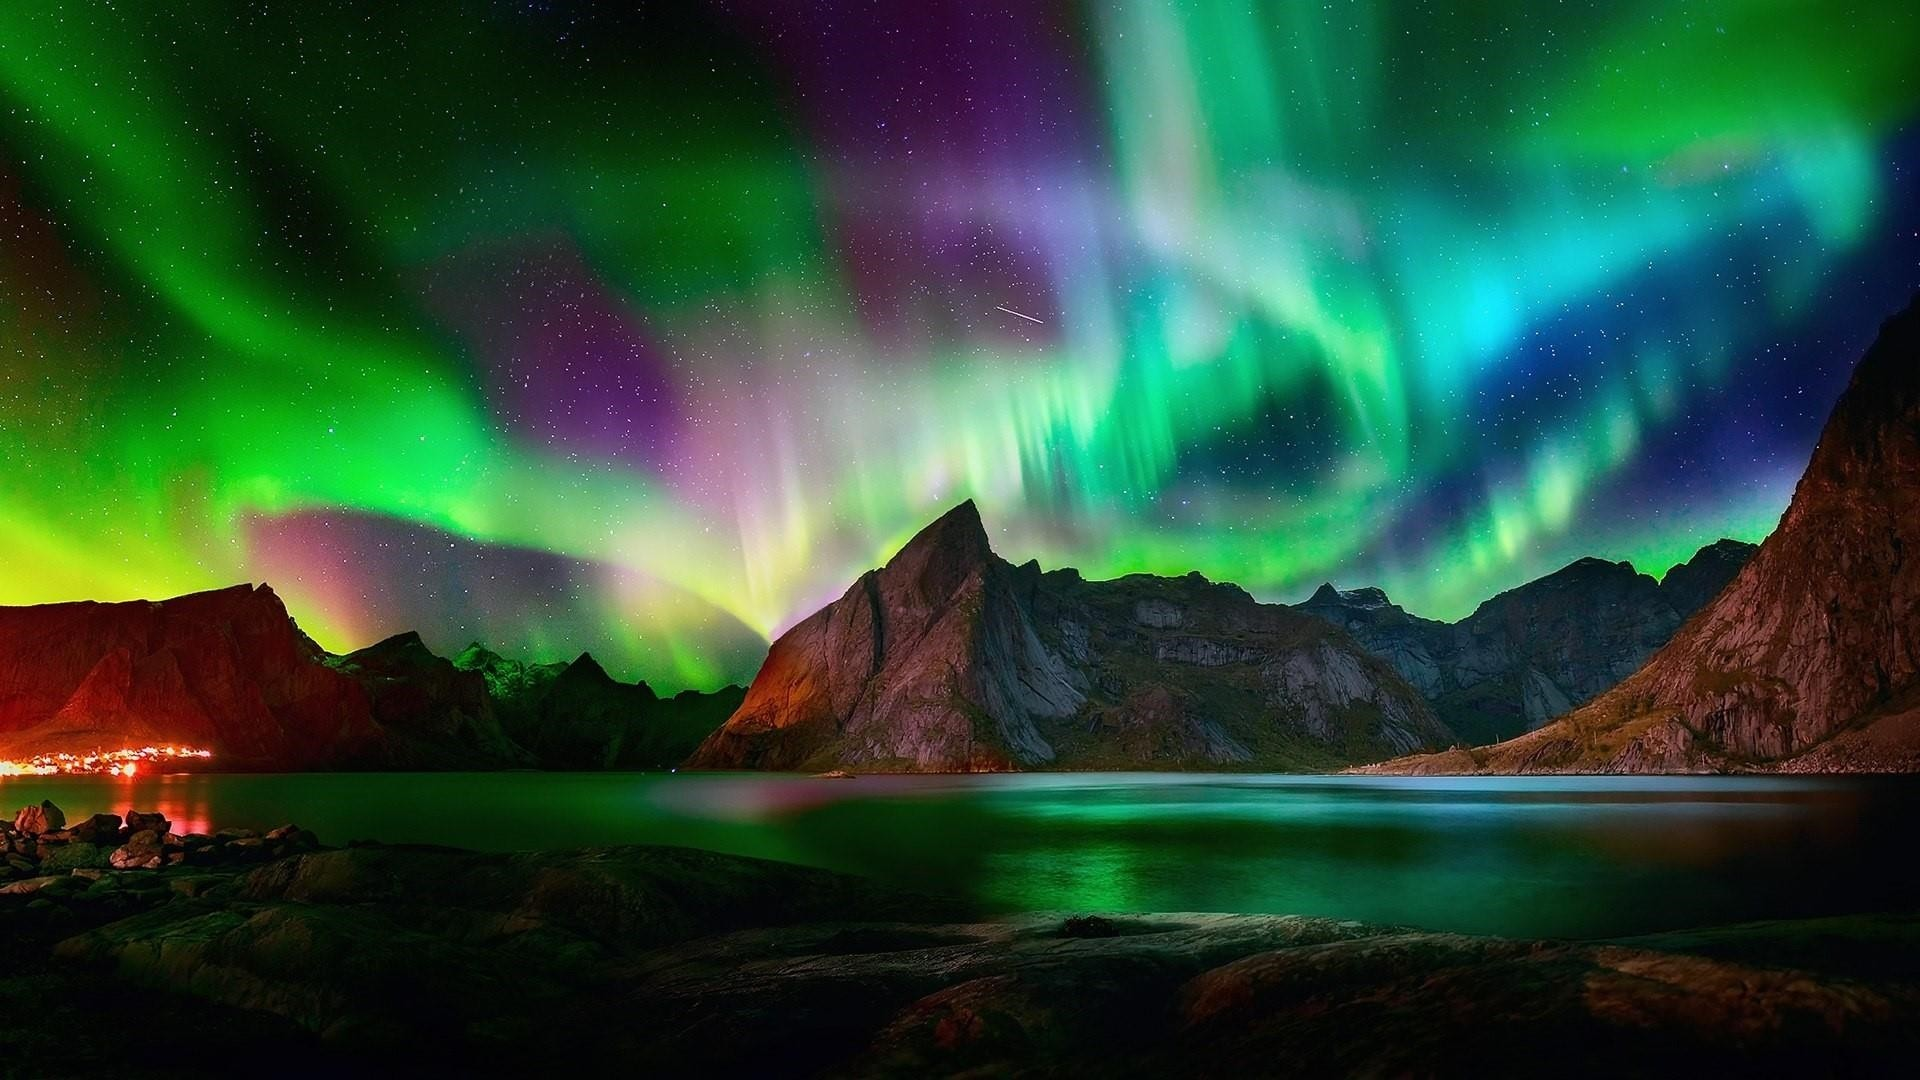 Aurora Borealis Wallpaper